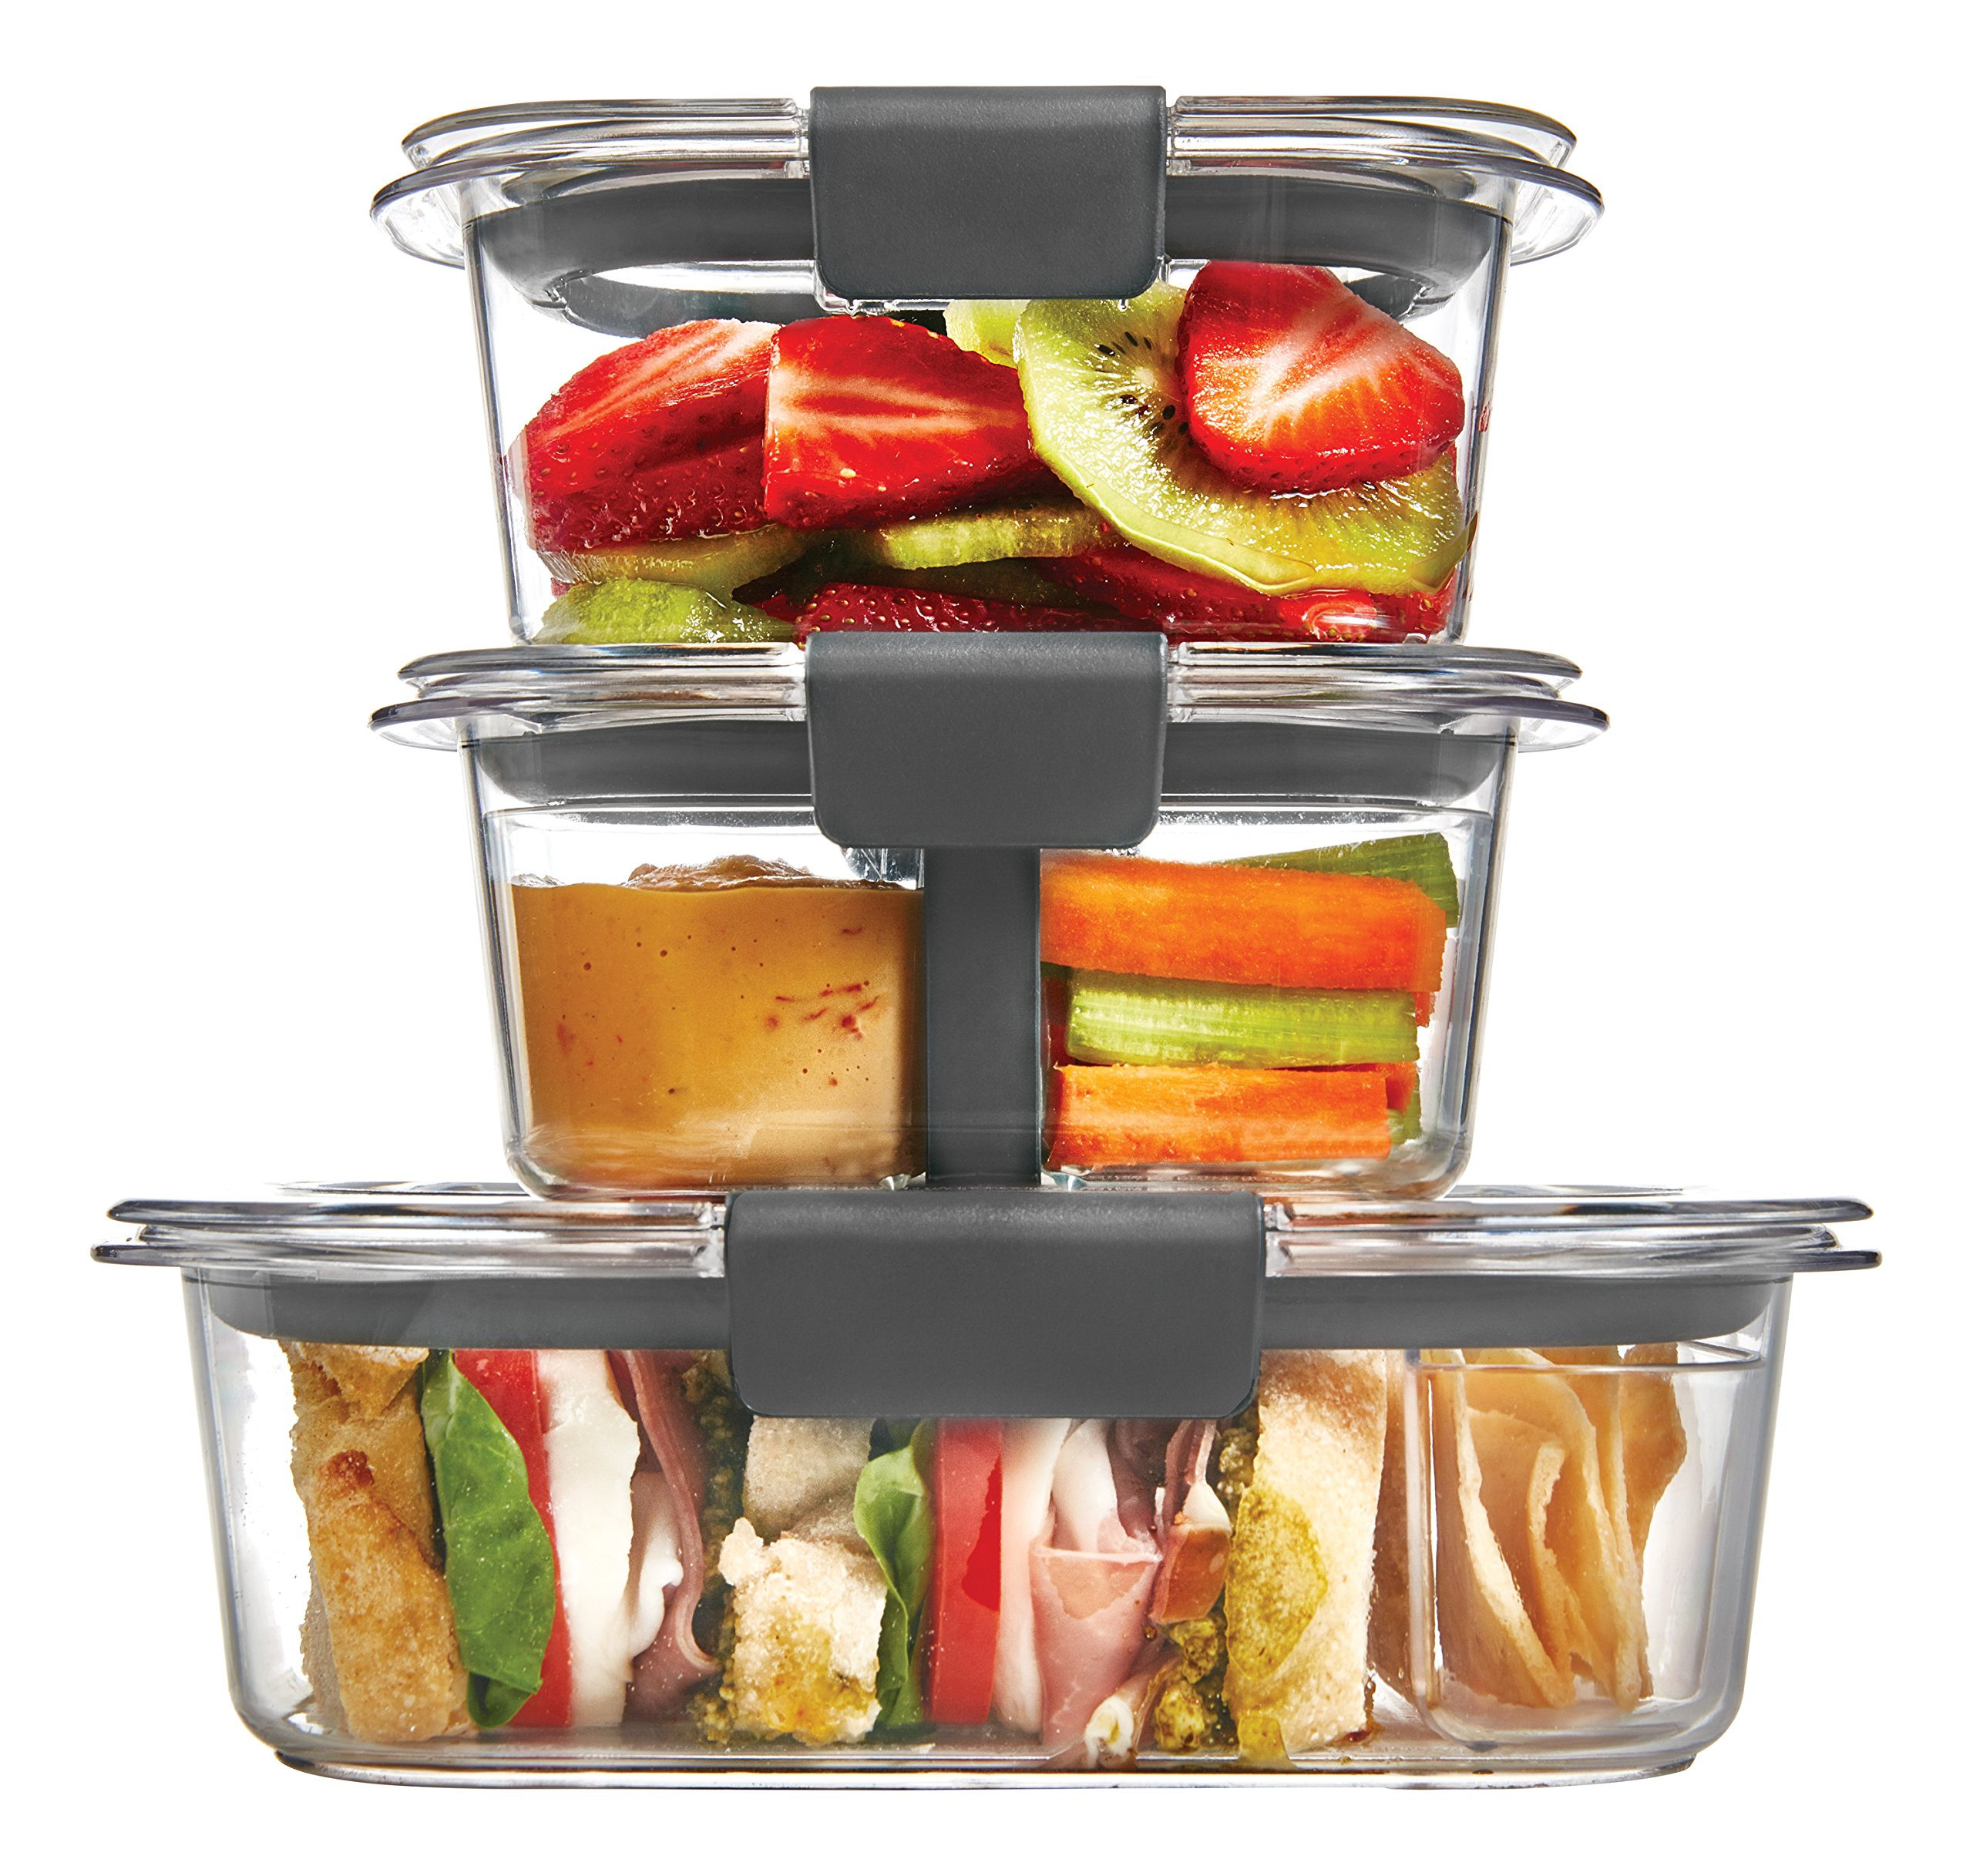 Rubbermaid Brilliance Food Storage Container, Sandwich and Snack Lunch Kit, Clear, 10-Piece Set 1997842 by Rubbermaid (Image #1)